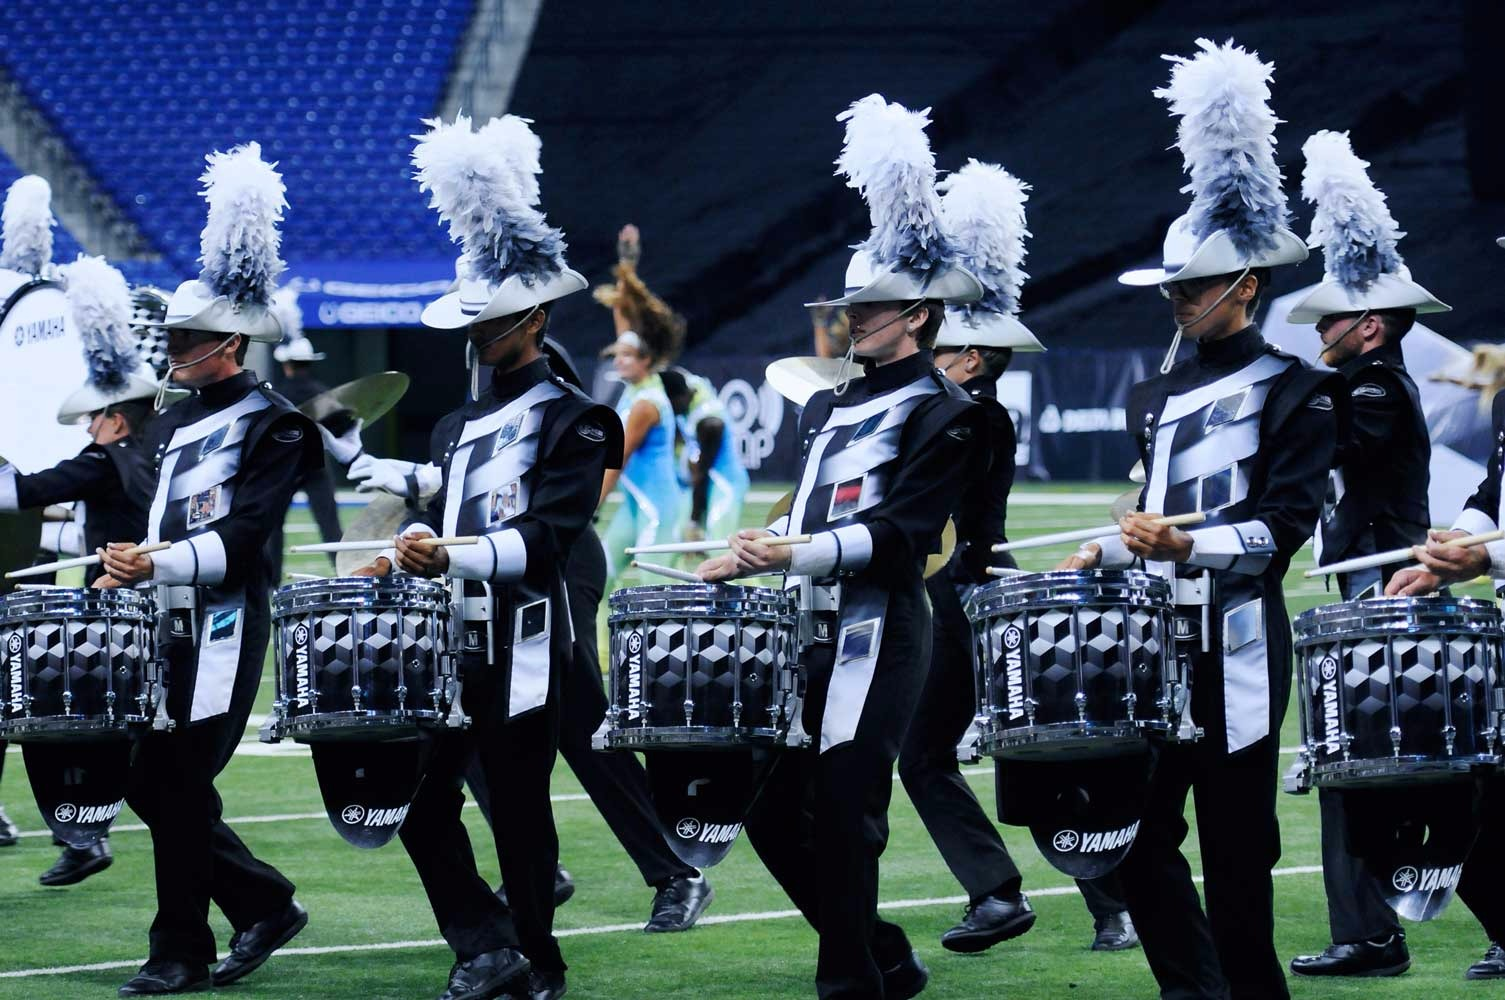 Drum Corps International  Tour